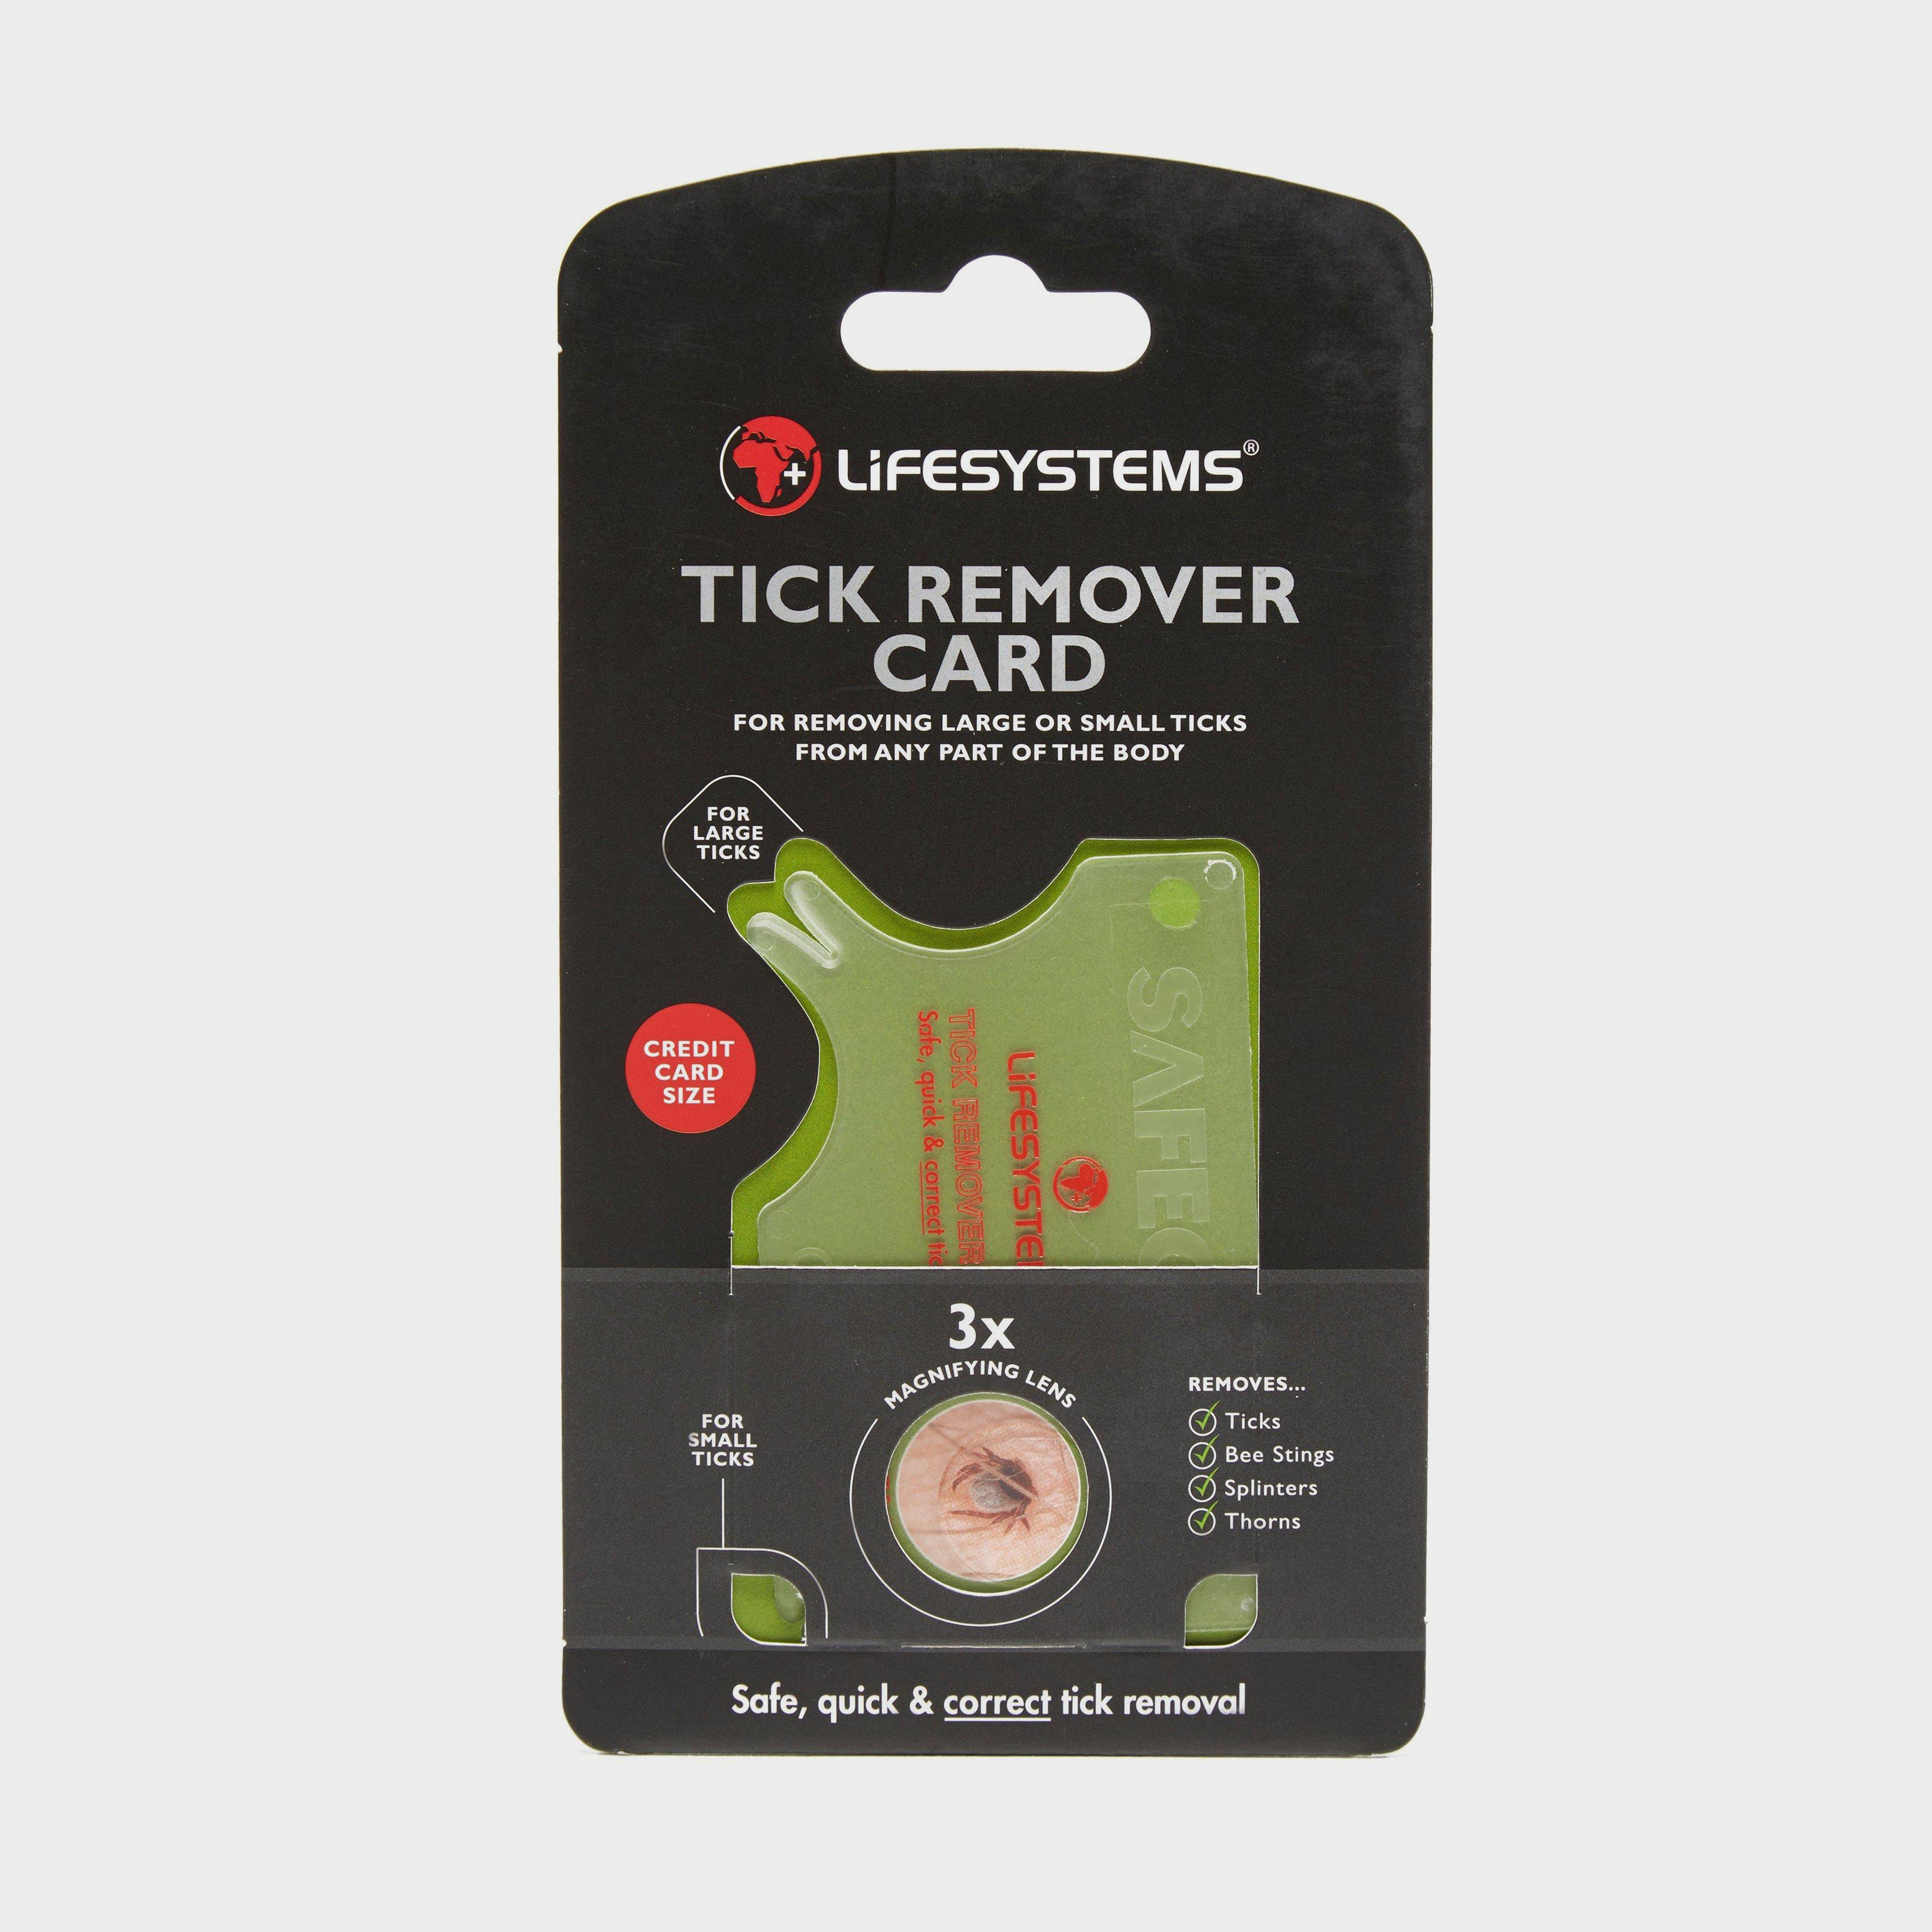 Lifesystems Lifesystems Tick Remover - N/A, N/A